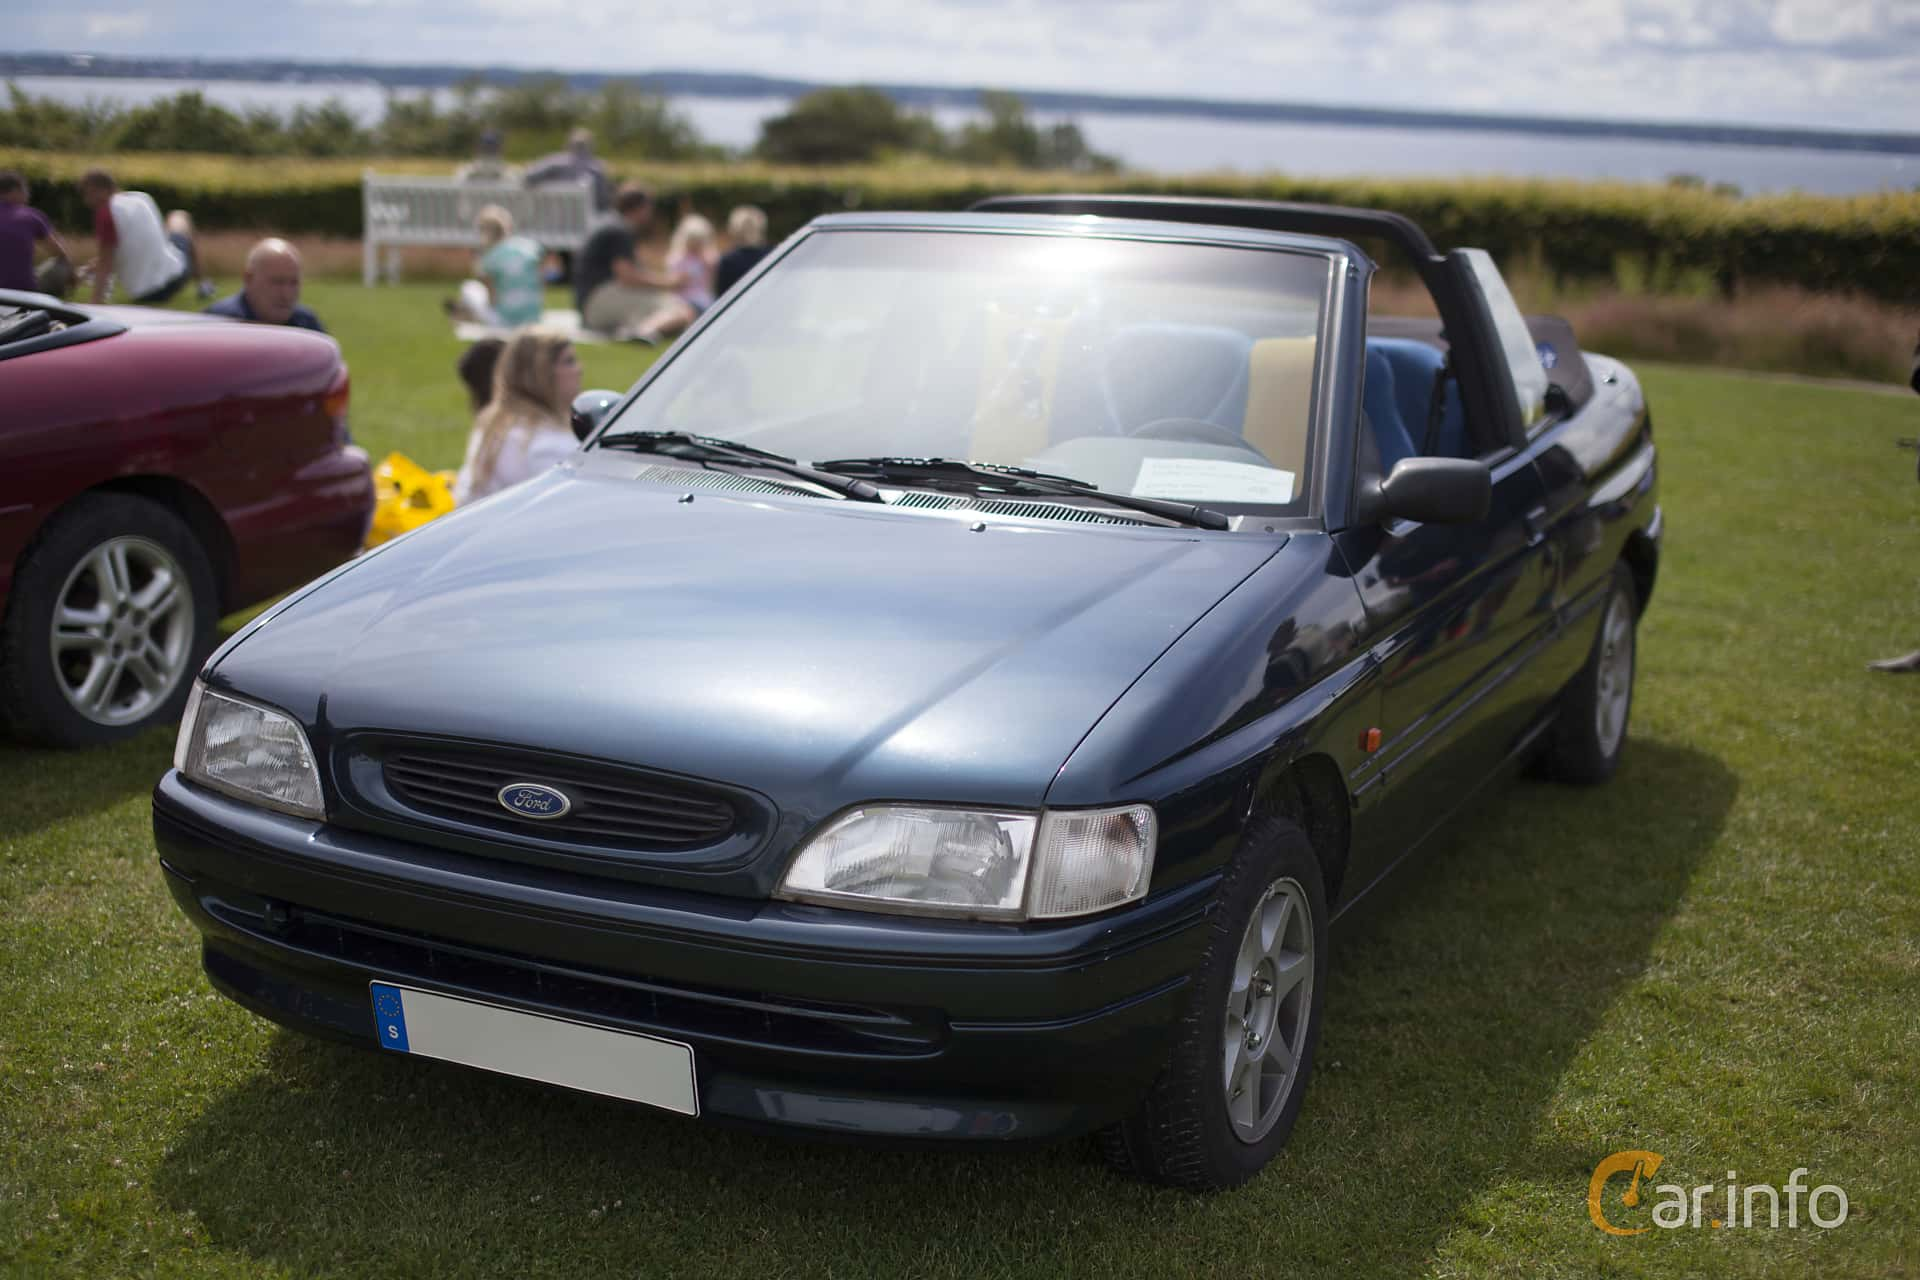 Ford Escort Cabriolet 1.6  Manual, 90hp, 1995 at Sofiero Classic 2014